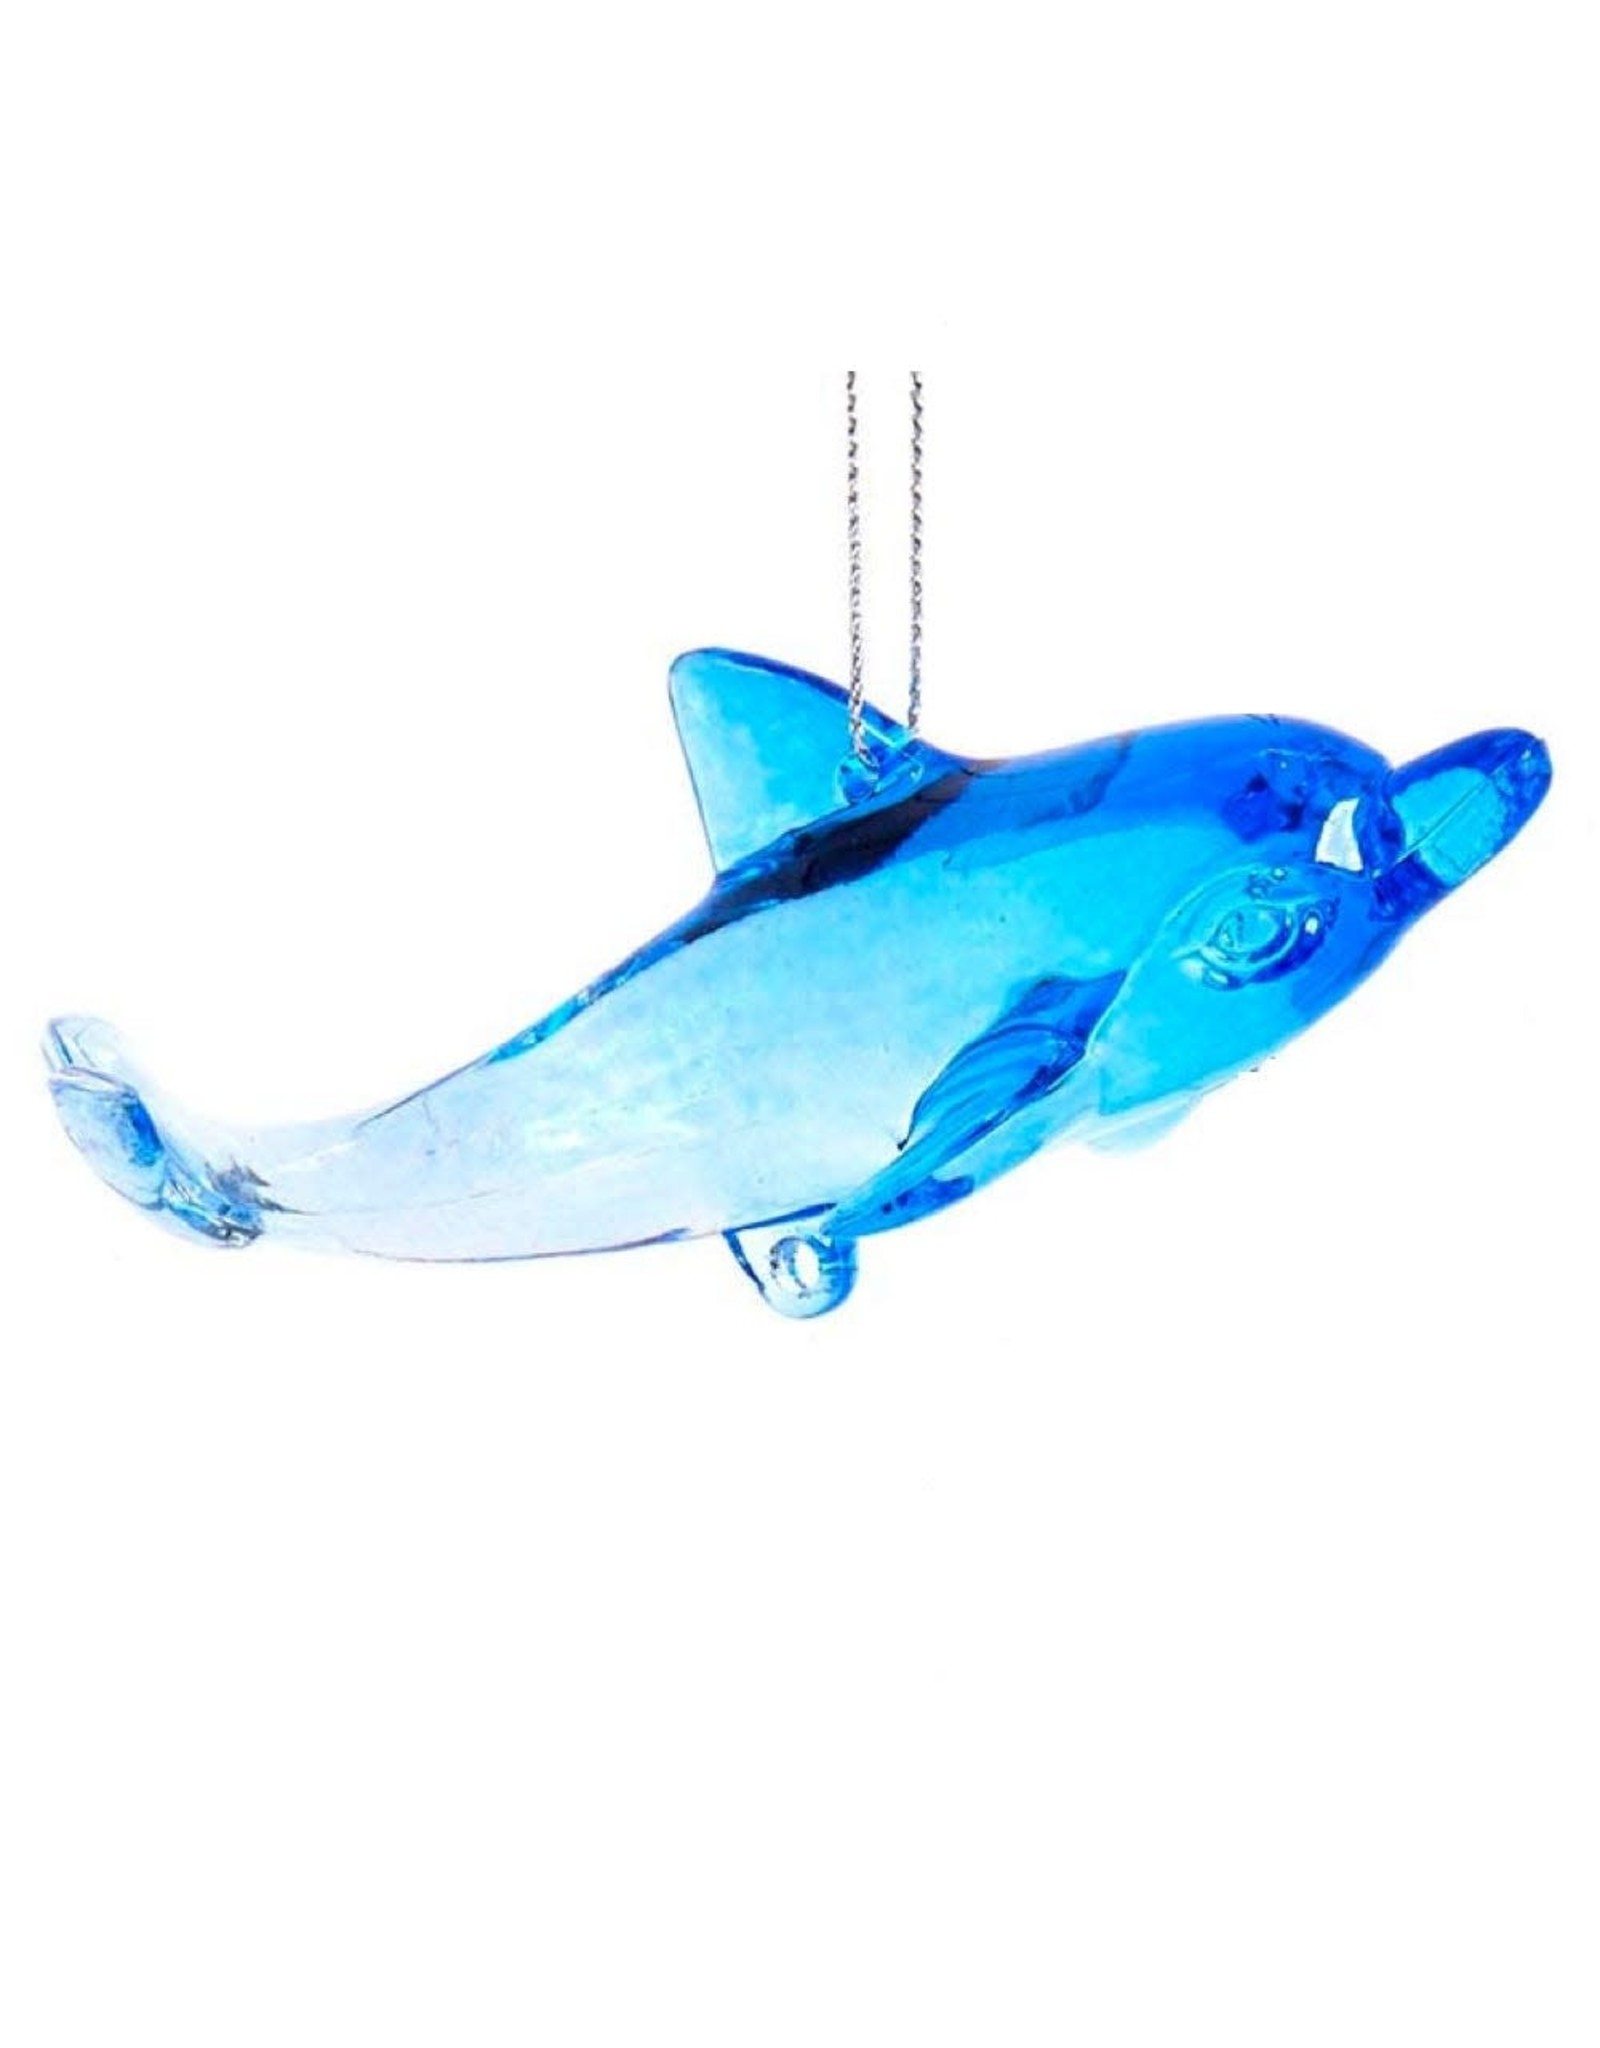 Kurt Adler Acrylic Dolphin Ornament Streamlined Pose